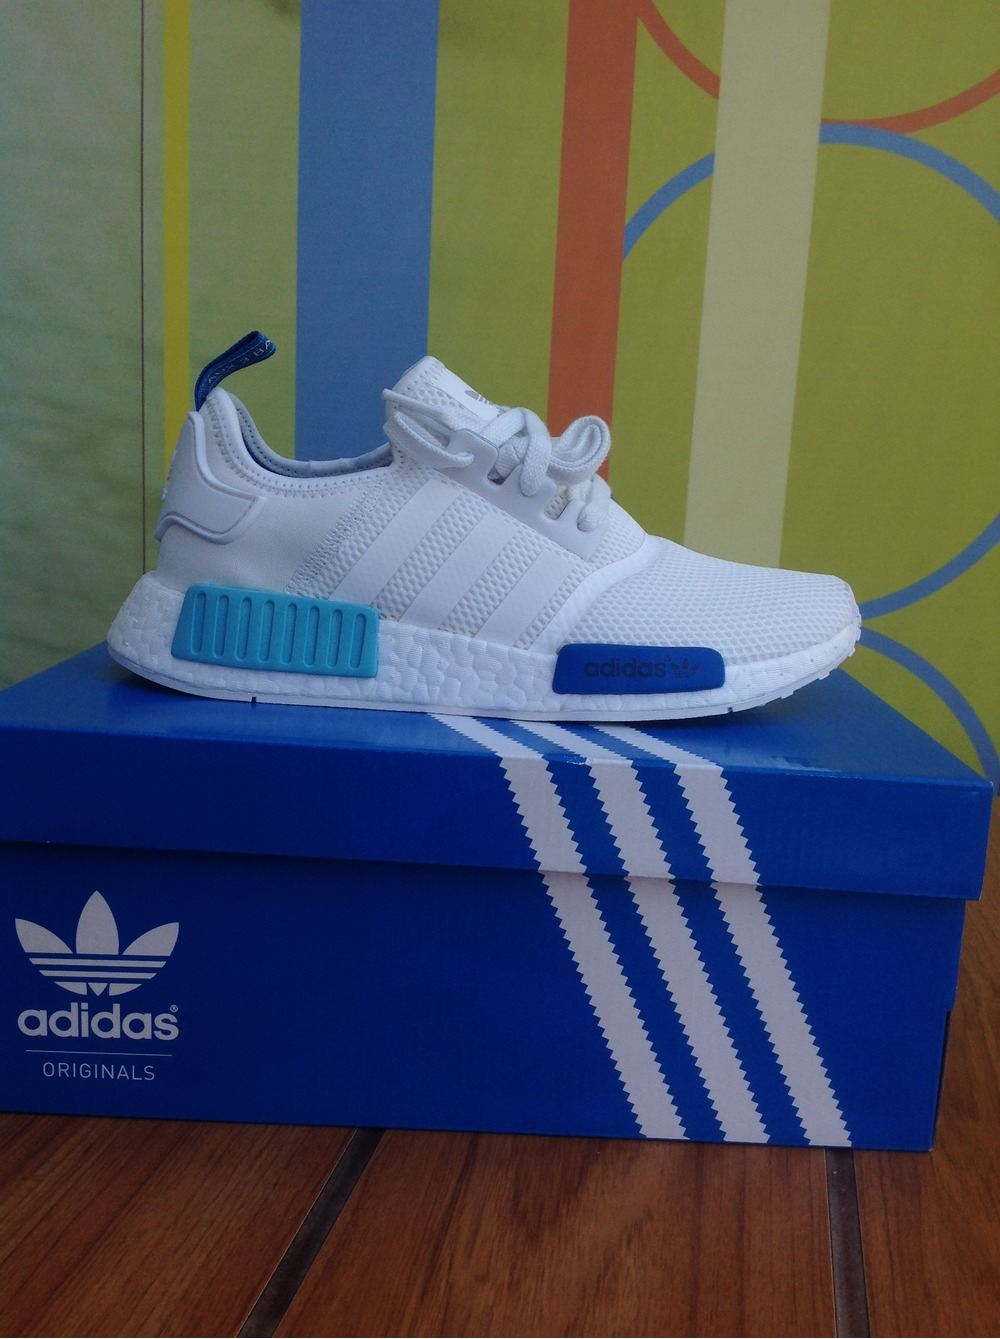 Nmd Adidas White Blue